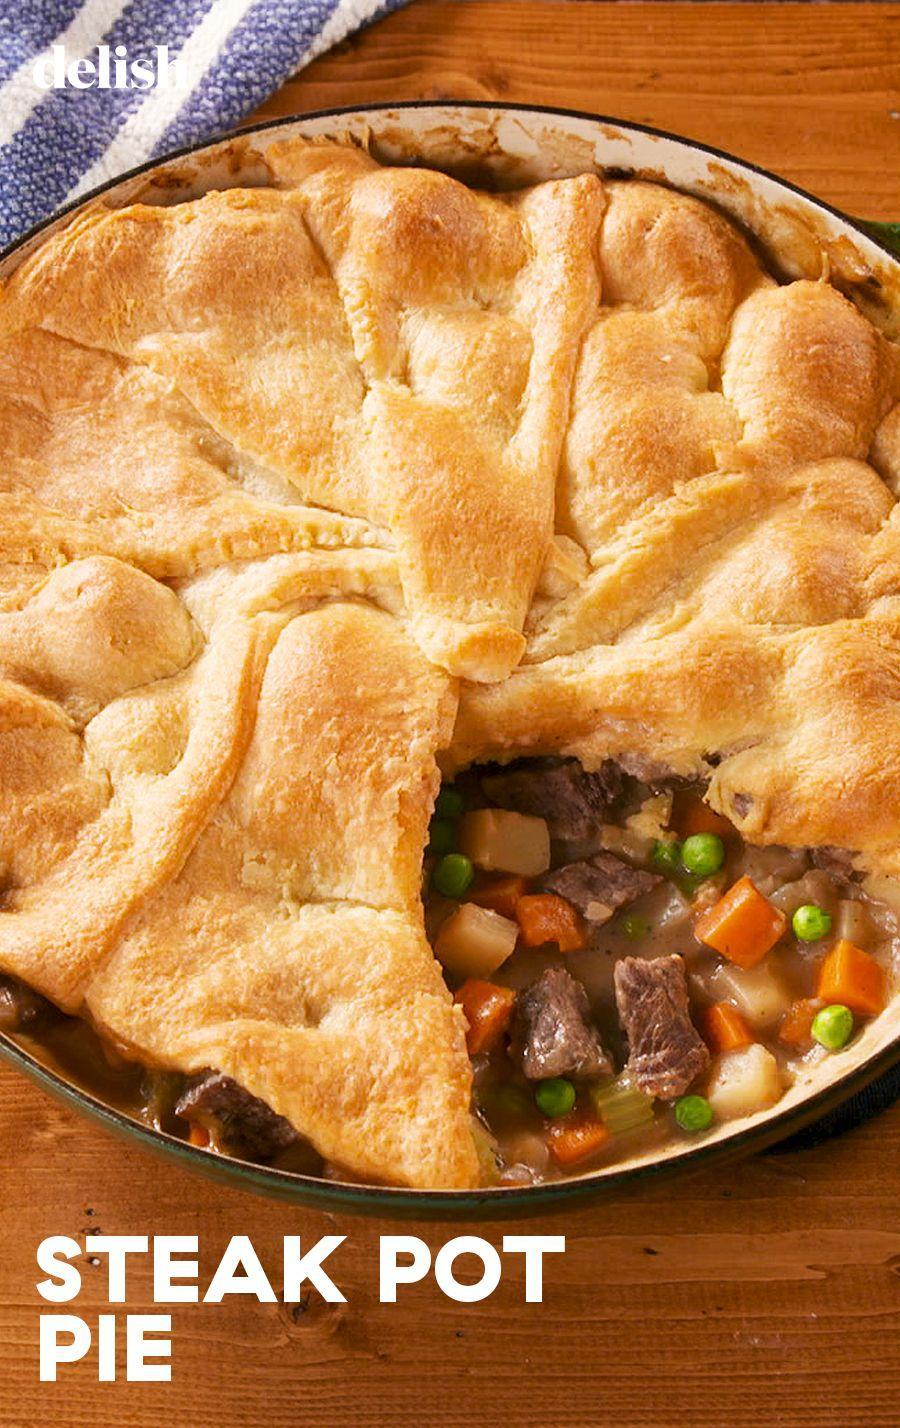 """<p>Switch things up from a chicken pot pie.</p><p>Get the recipe from <a href=""""https://www.delish.com/cooking/recipe-ideas/a29701597/steak-pot-pie-recipe/"""" rel=""""nofollow noopener"""" target=""""_blank"""" data-ylk=""""slk:Delish"""" class=""""link rapid-noclick-resp"""">Delish</a>.</p>"""